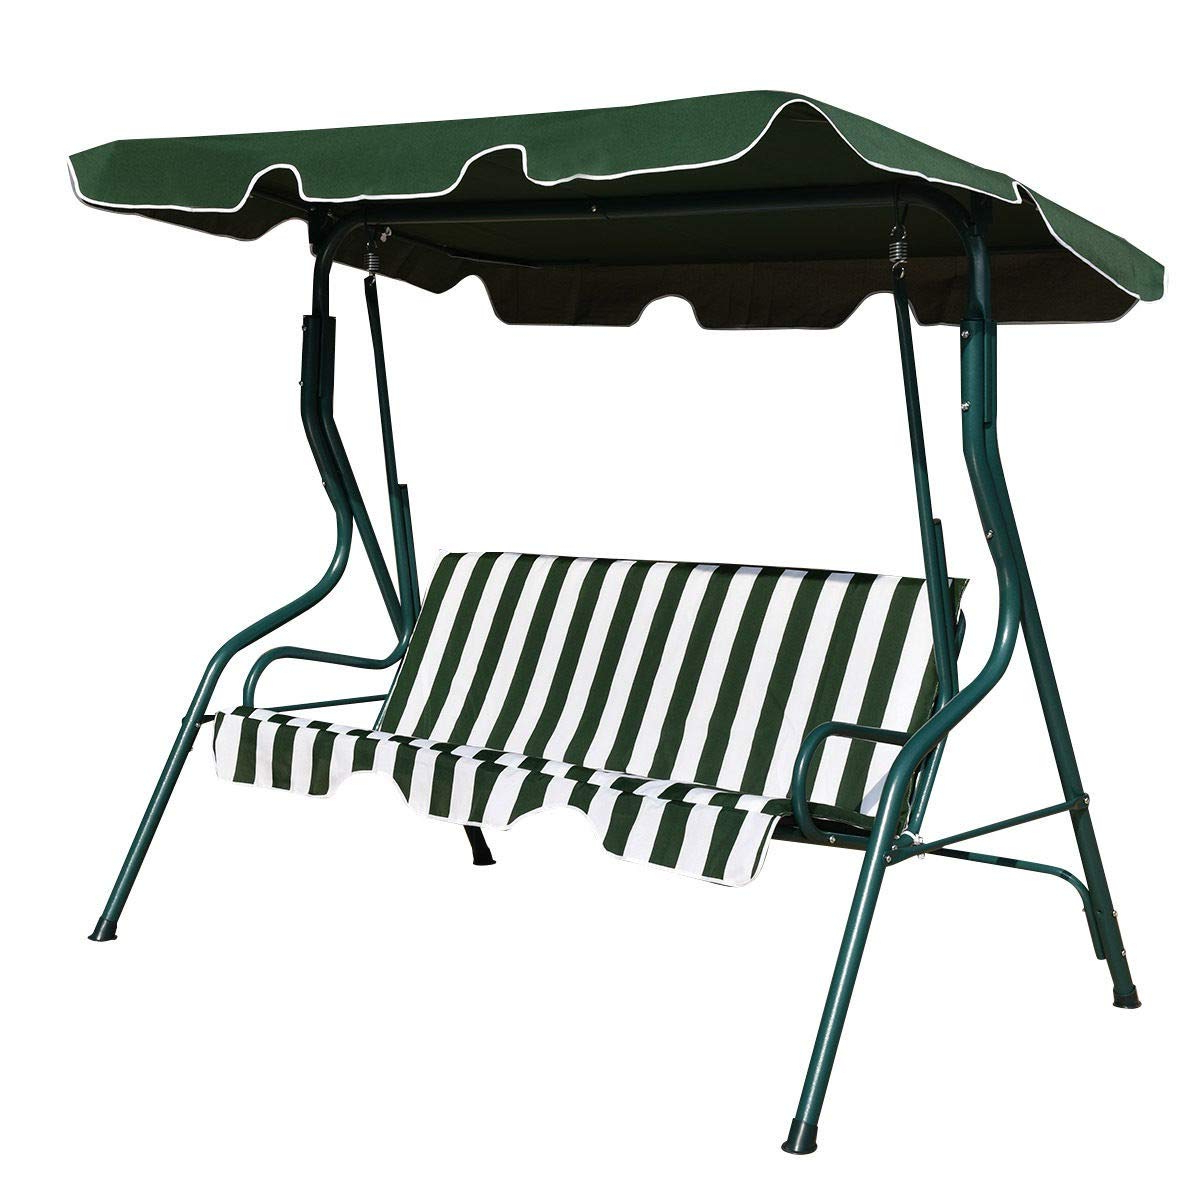 Newest Amazon : Lucidz 3 Seater Swing Chair Cover Cushioned Pertaining To 3 Seats Patio Canopy Swing Gliders Hammock Cushioned Steel Frame (Gallery 13 of 30)